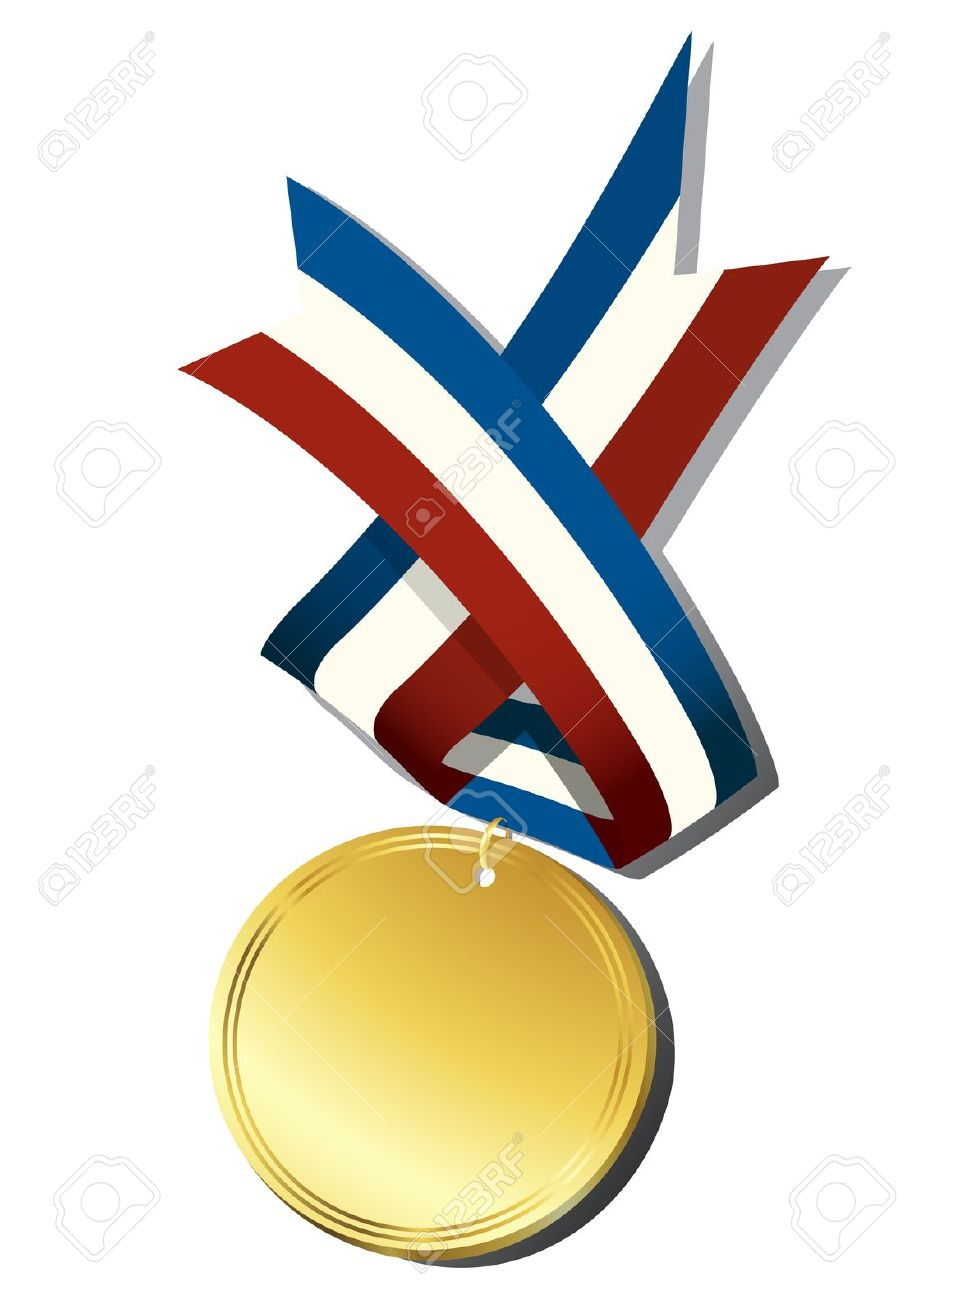 Medals and ribbons clipart 2 » Clipart Station.